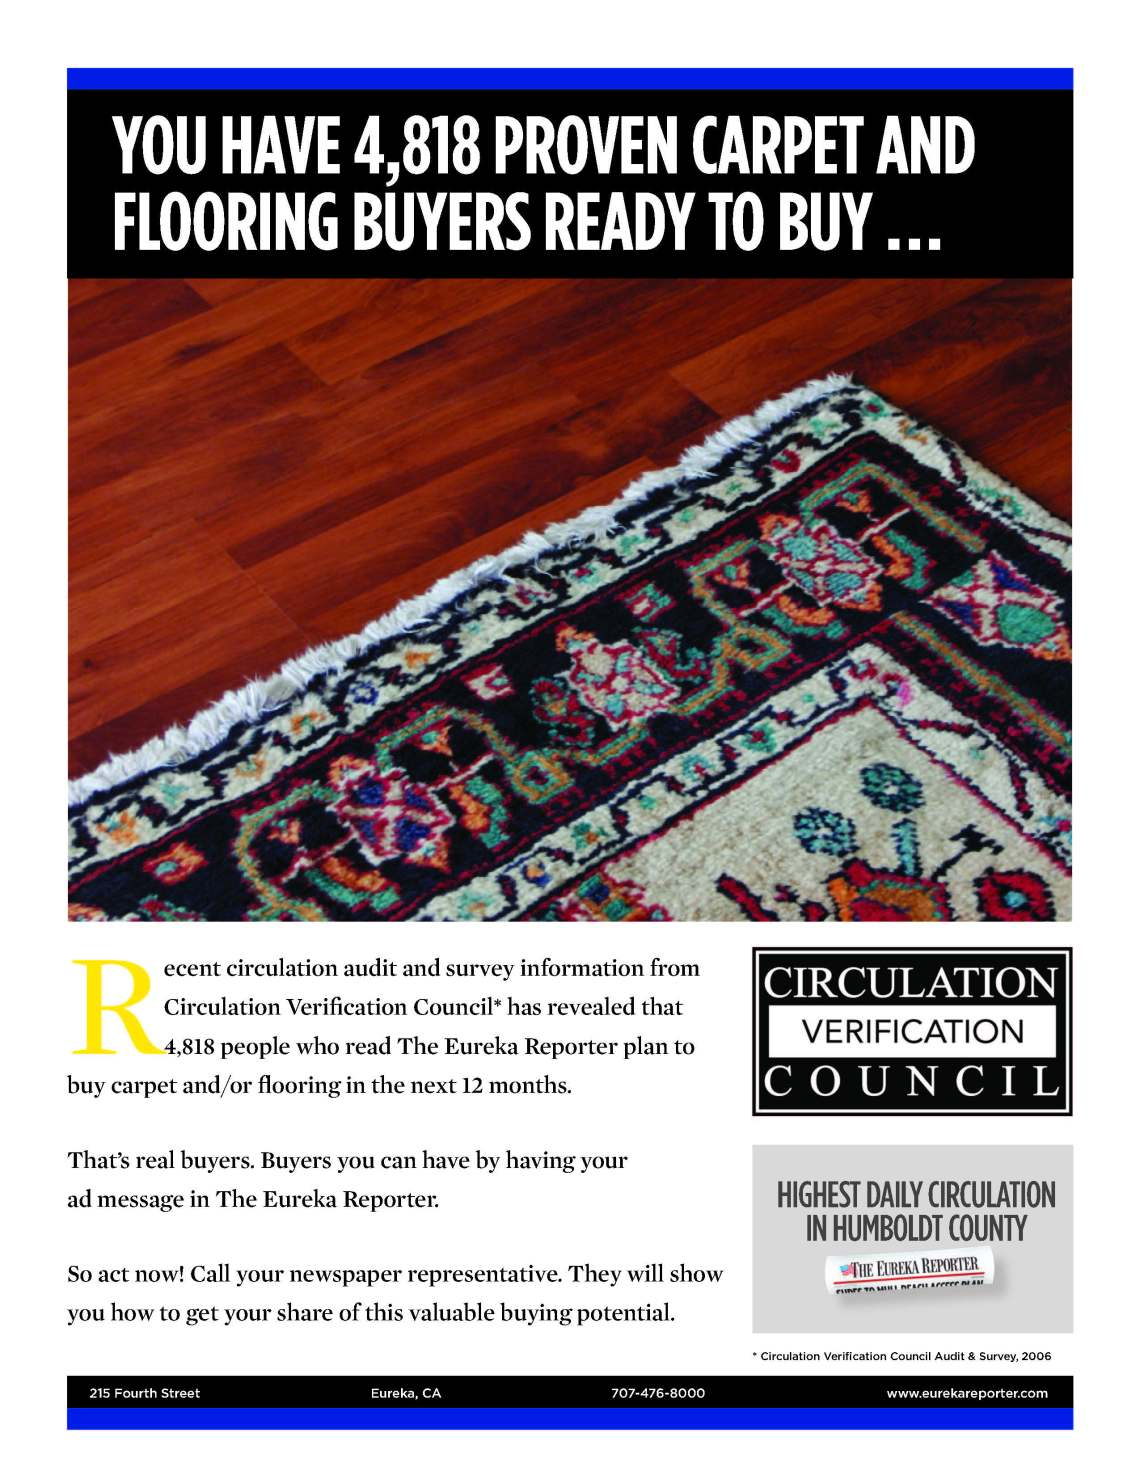 flooring_buyers